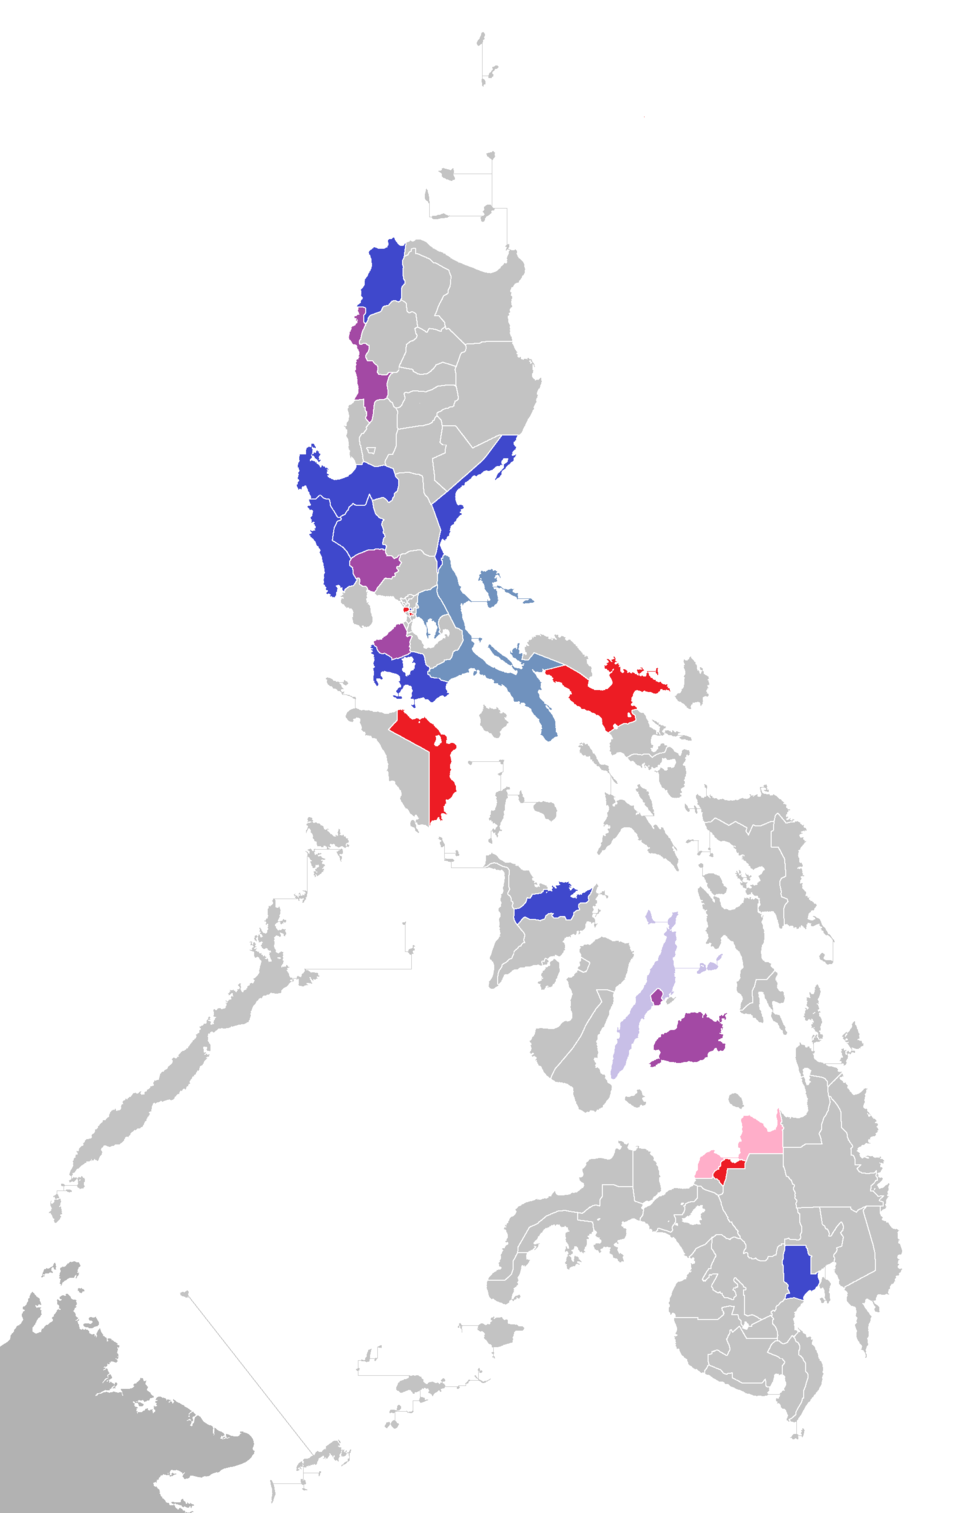 Home provinces of Philippine Presidents